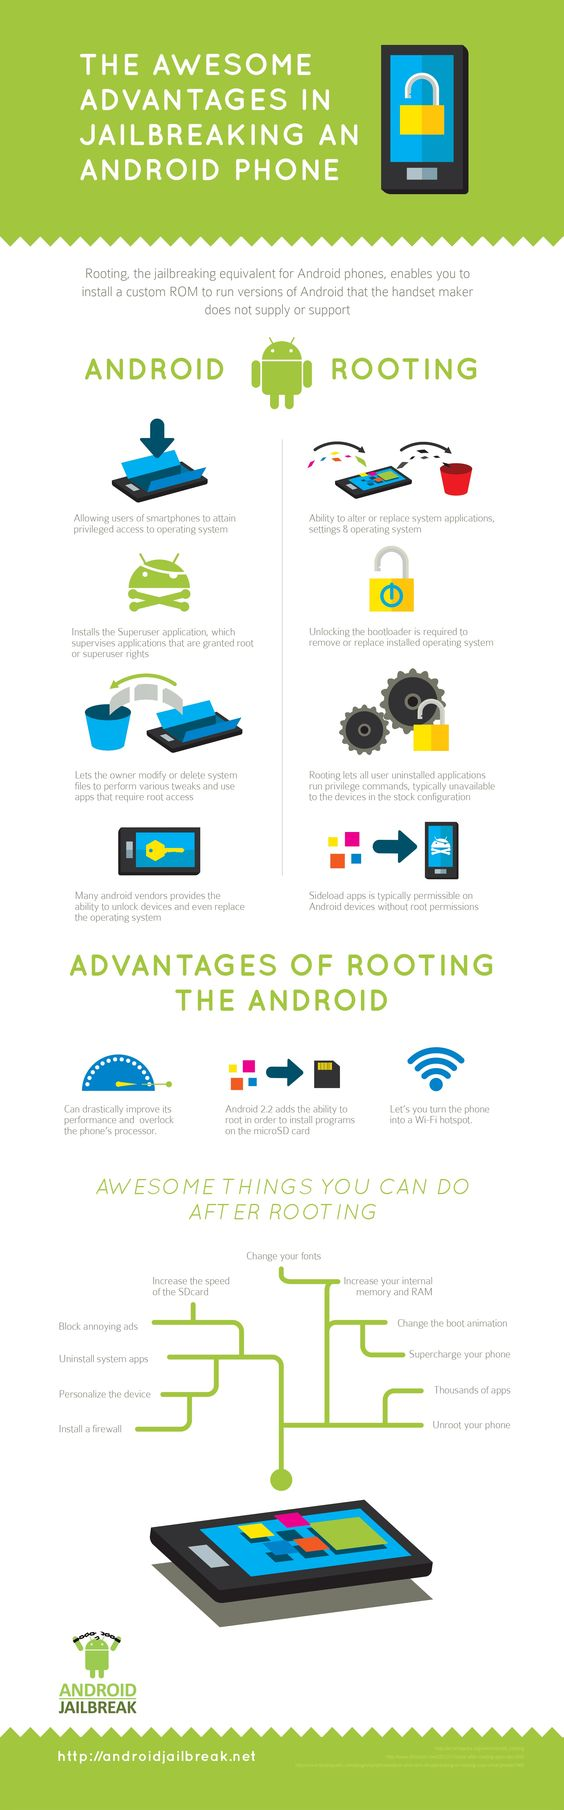 Advantages-of-Rooting-Android-Phone-Why-You-Should-Root-Infographic-wallpaper-wp3602255